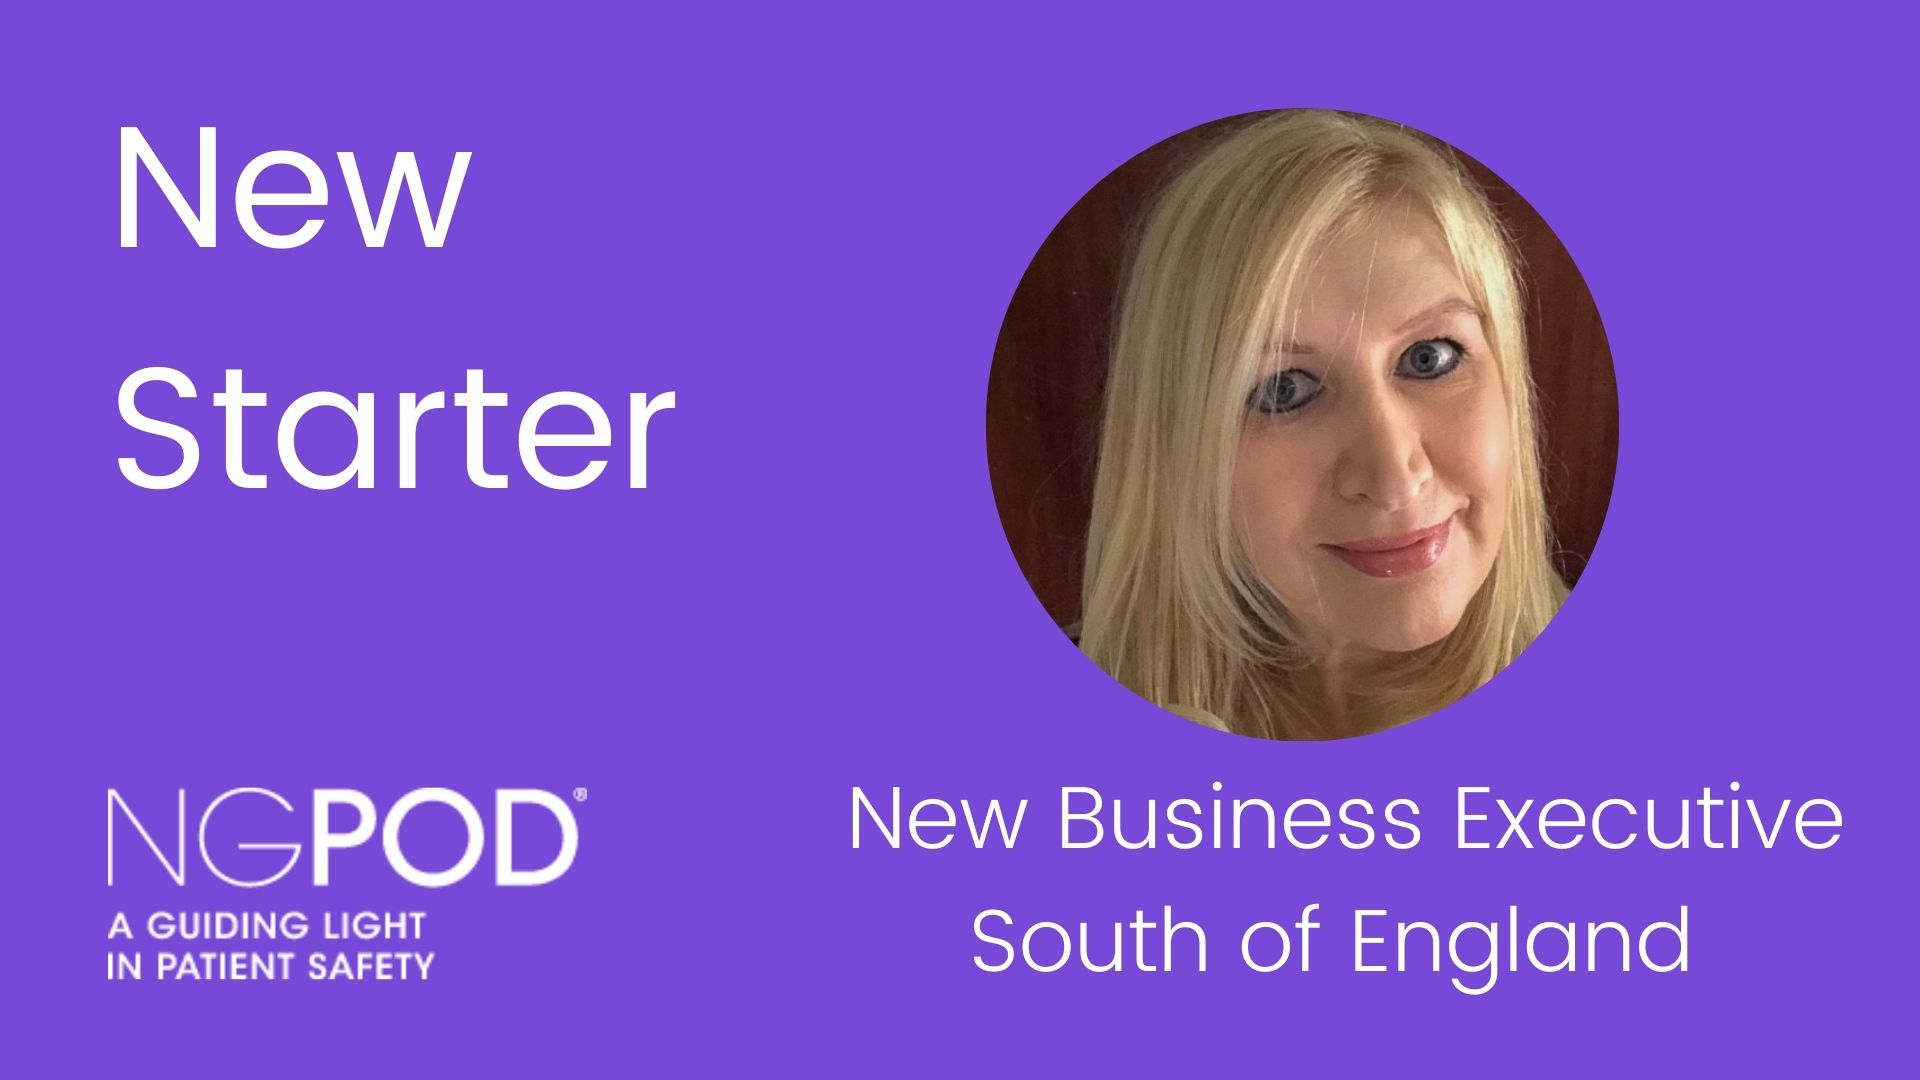 New Business Executive in South of England